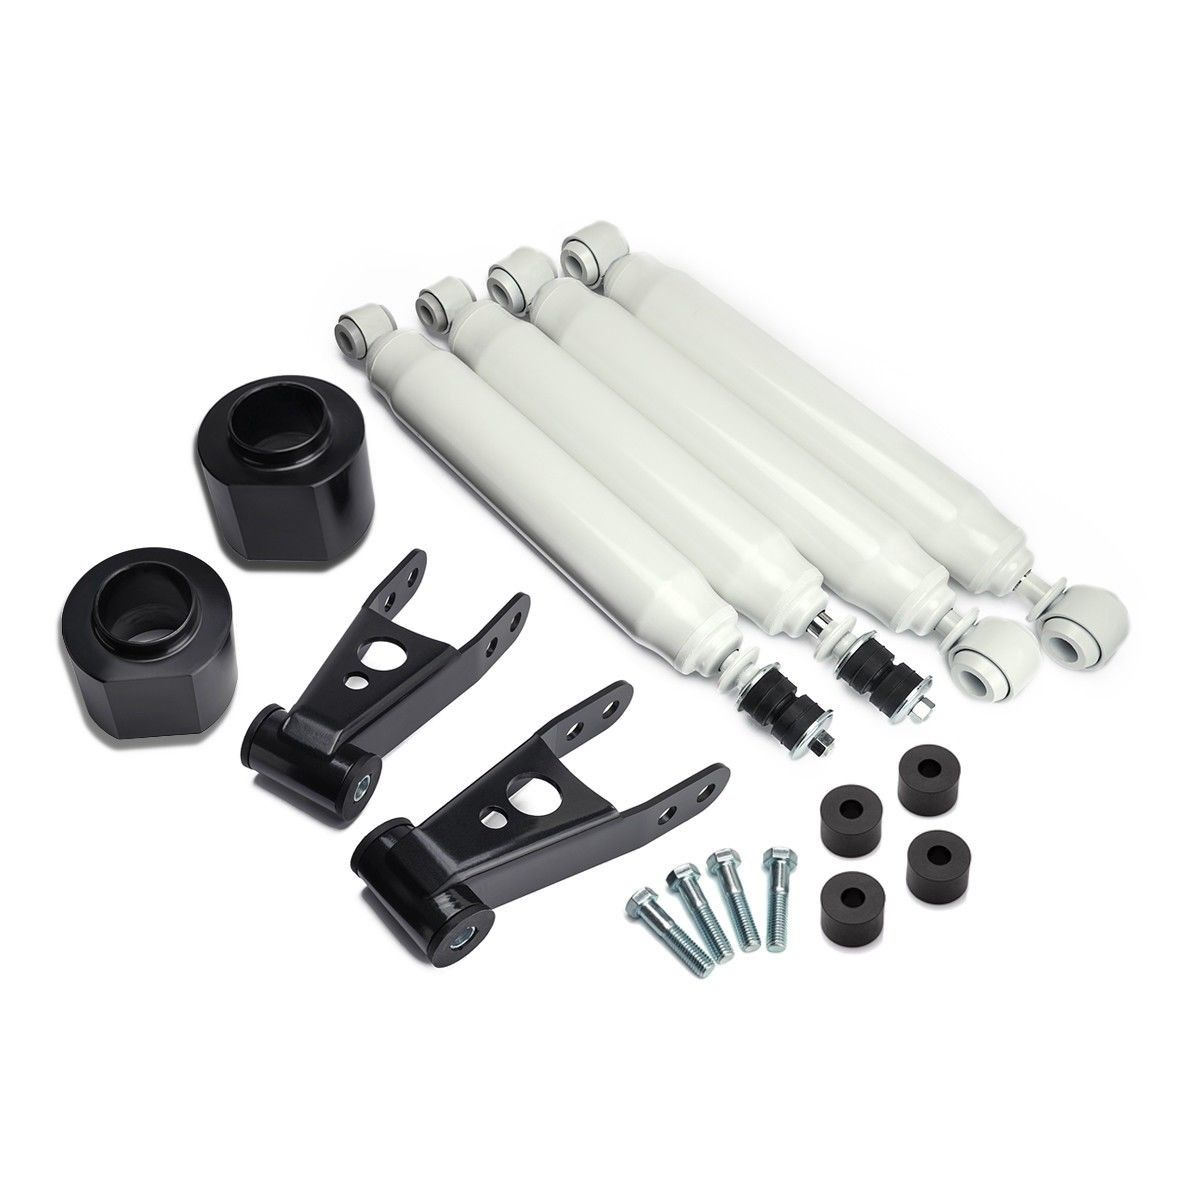 1984-2001 Jeep Cherokee XJ Full Lift Kit with Adjustable Shackle +Transfer Case Drop and Shocks